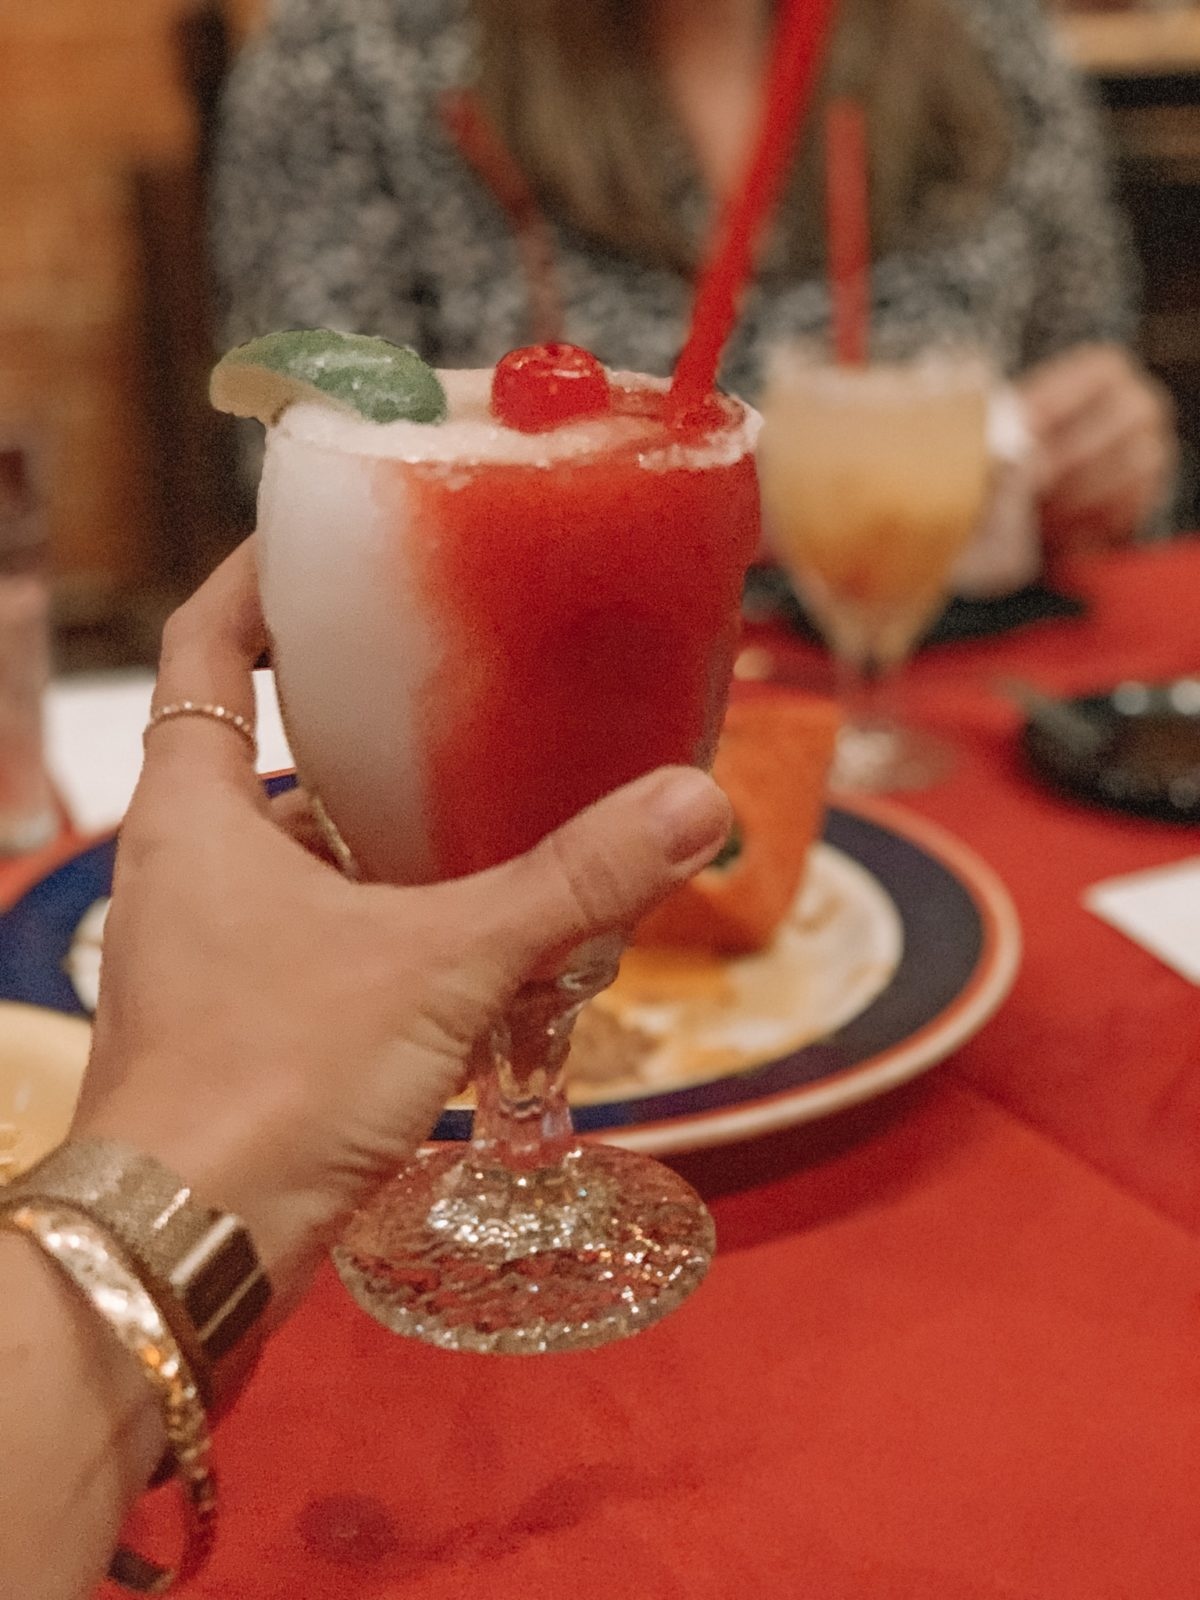 48 hours in San Antonio - Margarita